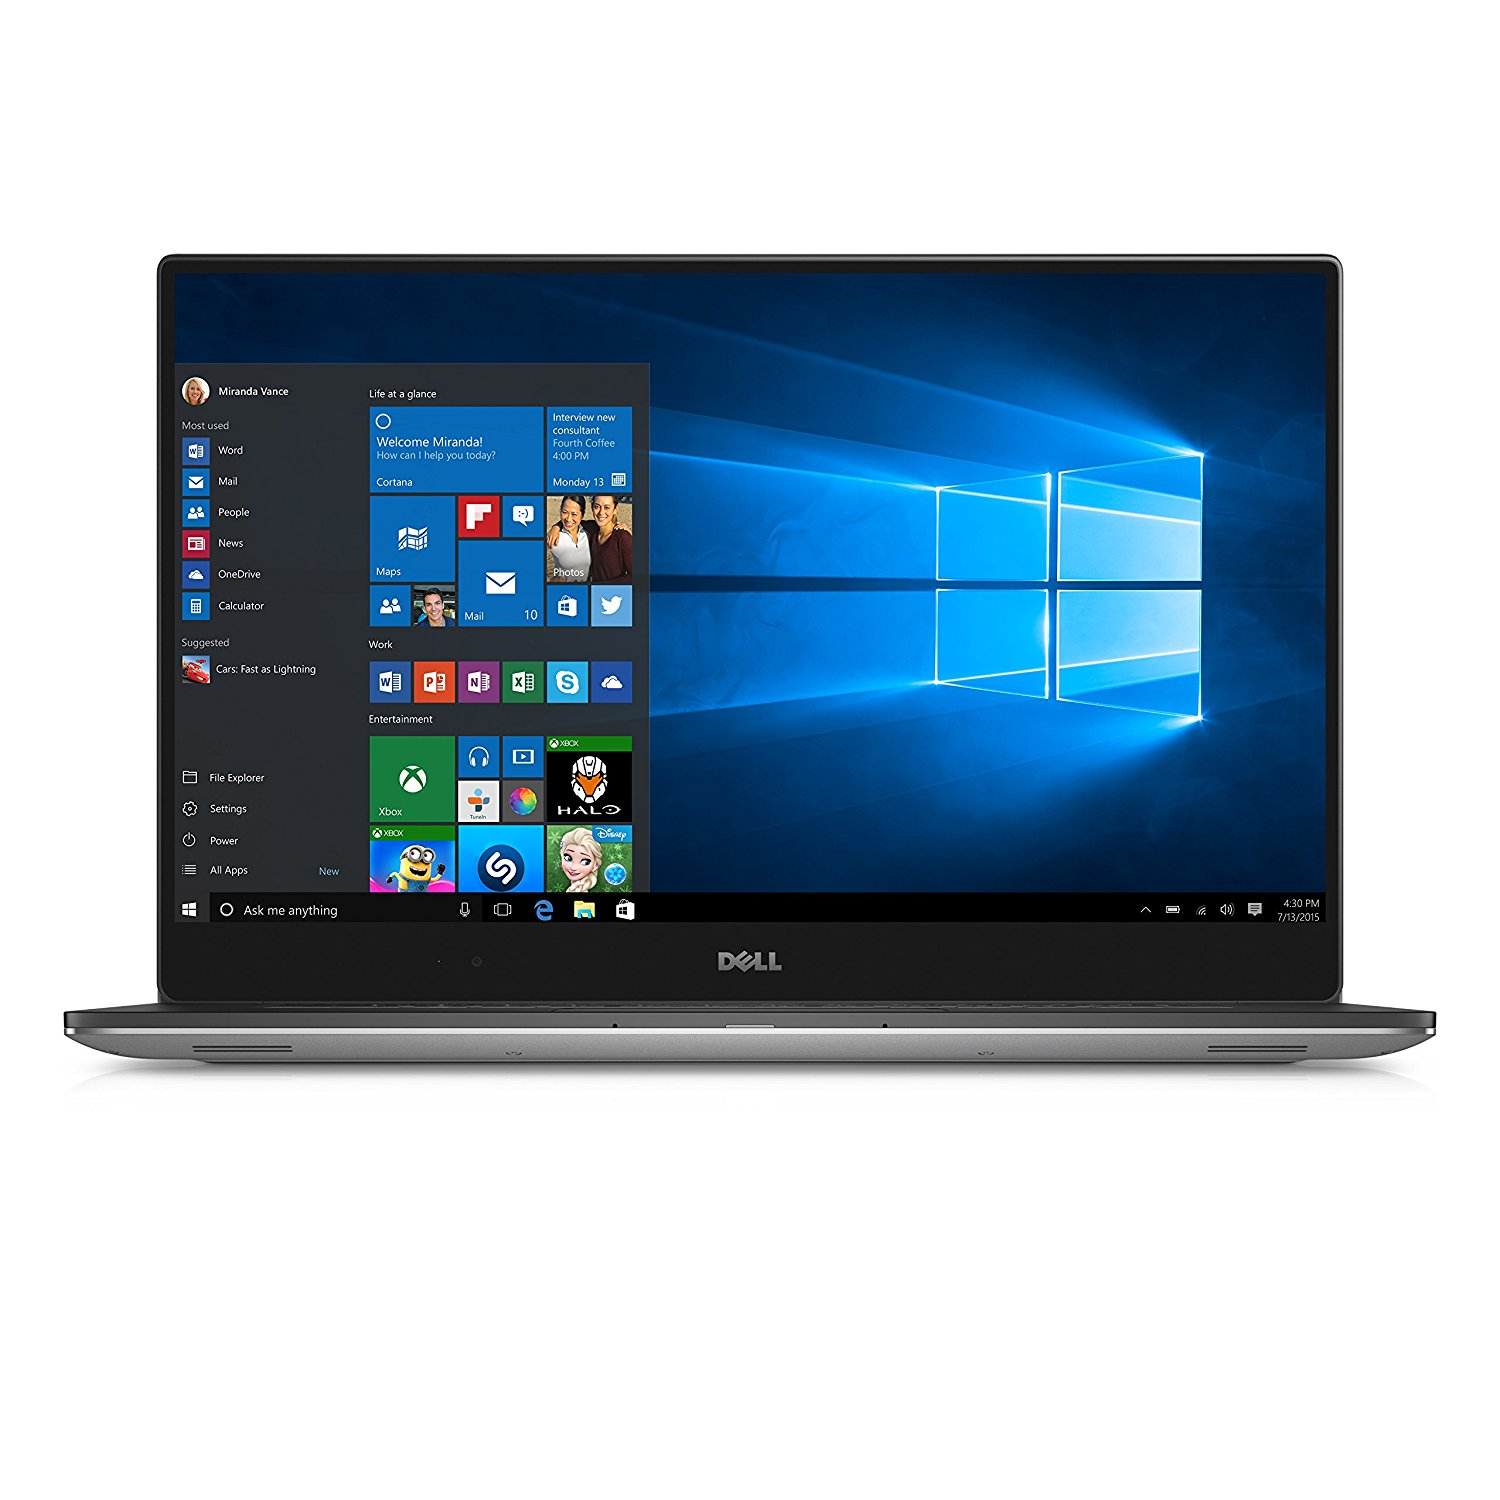 DELL XPS 15 9550 DRIVERS FOR WINDOWS